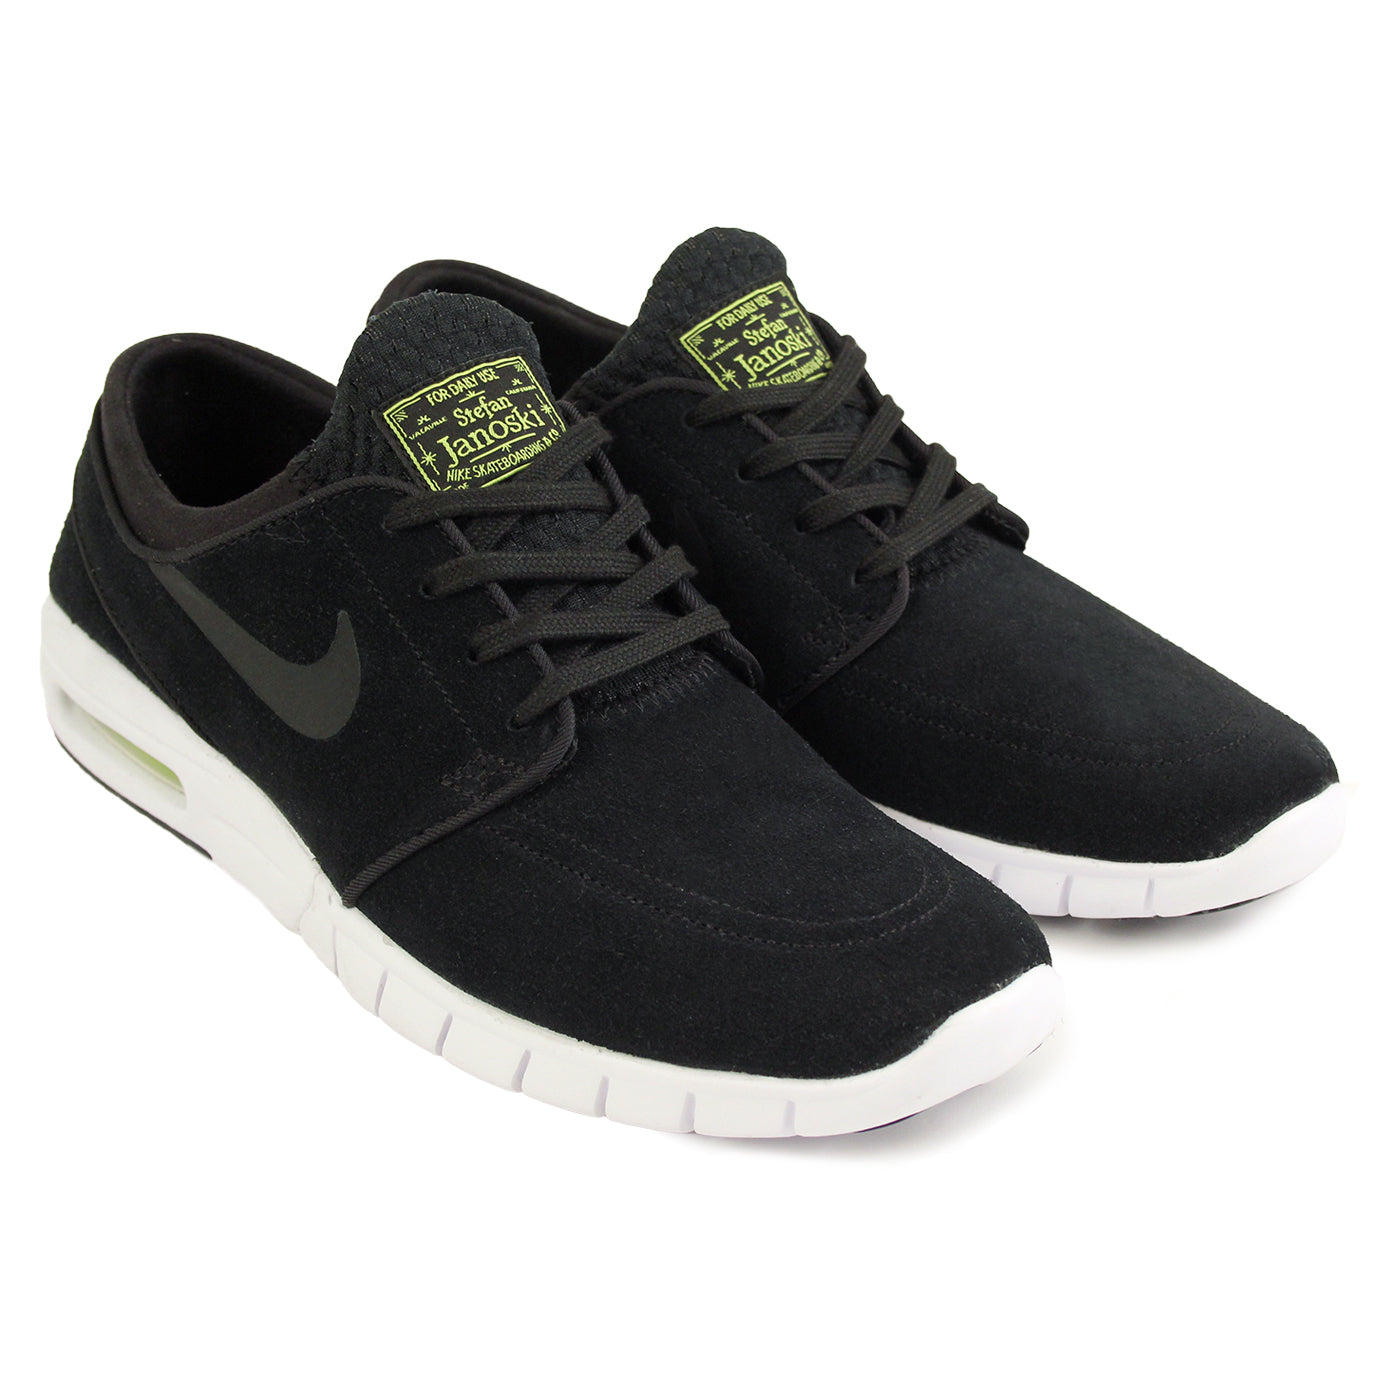 new products dadec 9acd0 Nike SB Stefan Janoski Max L Shoes - Black   Black   Cyber   White. Size  Charts